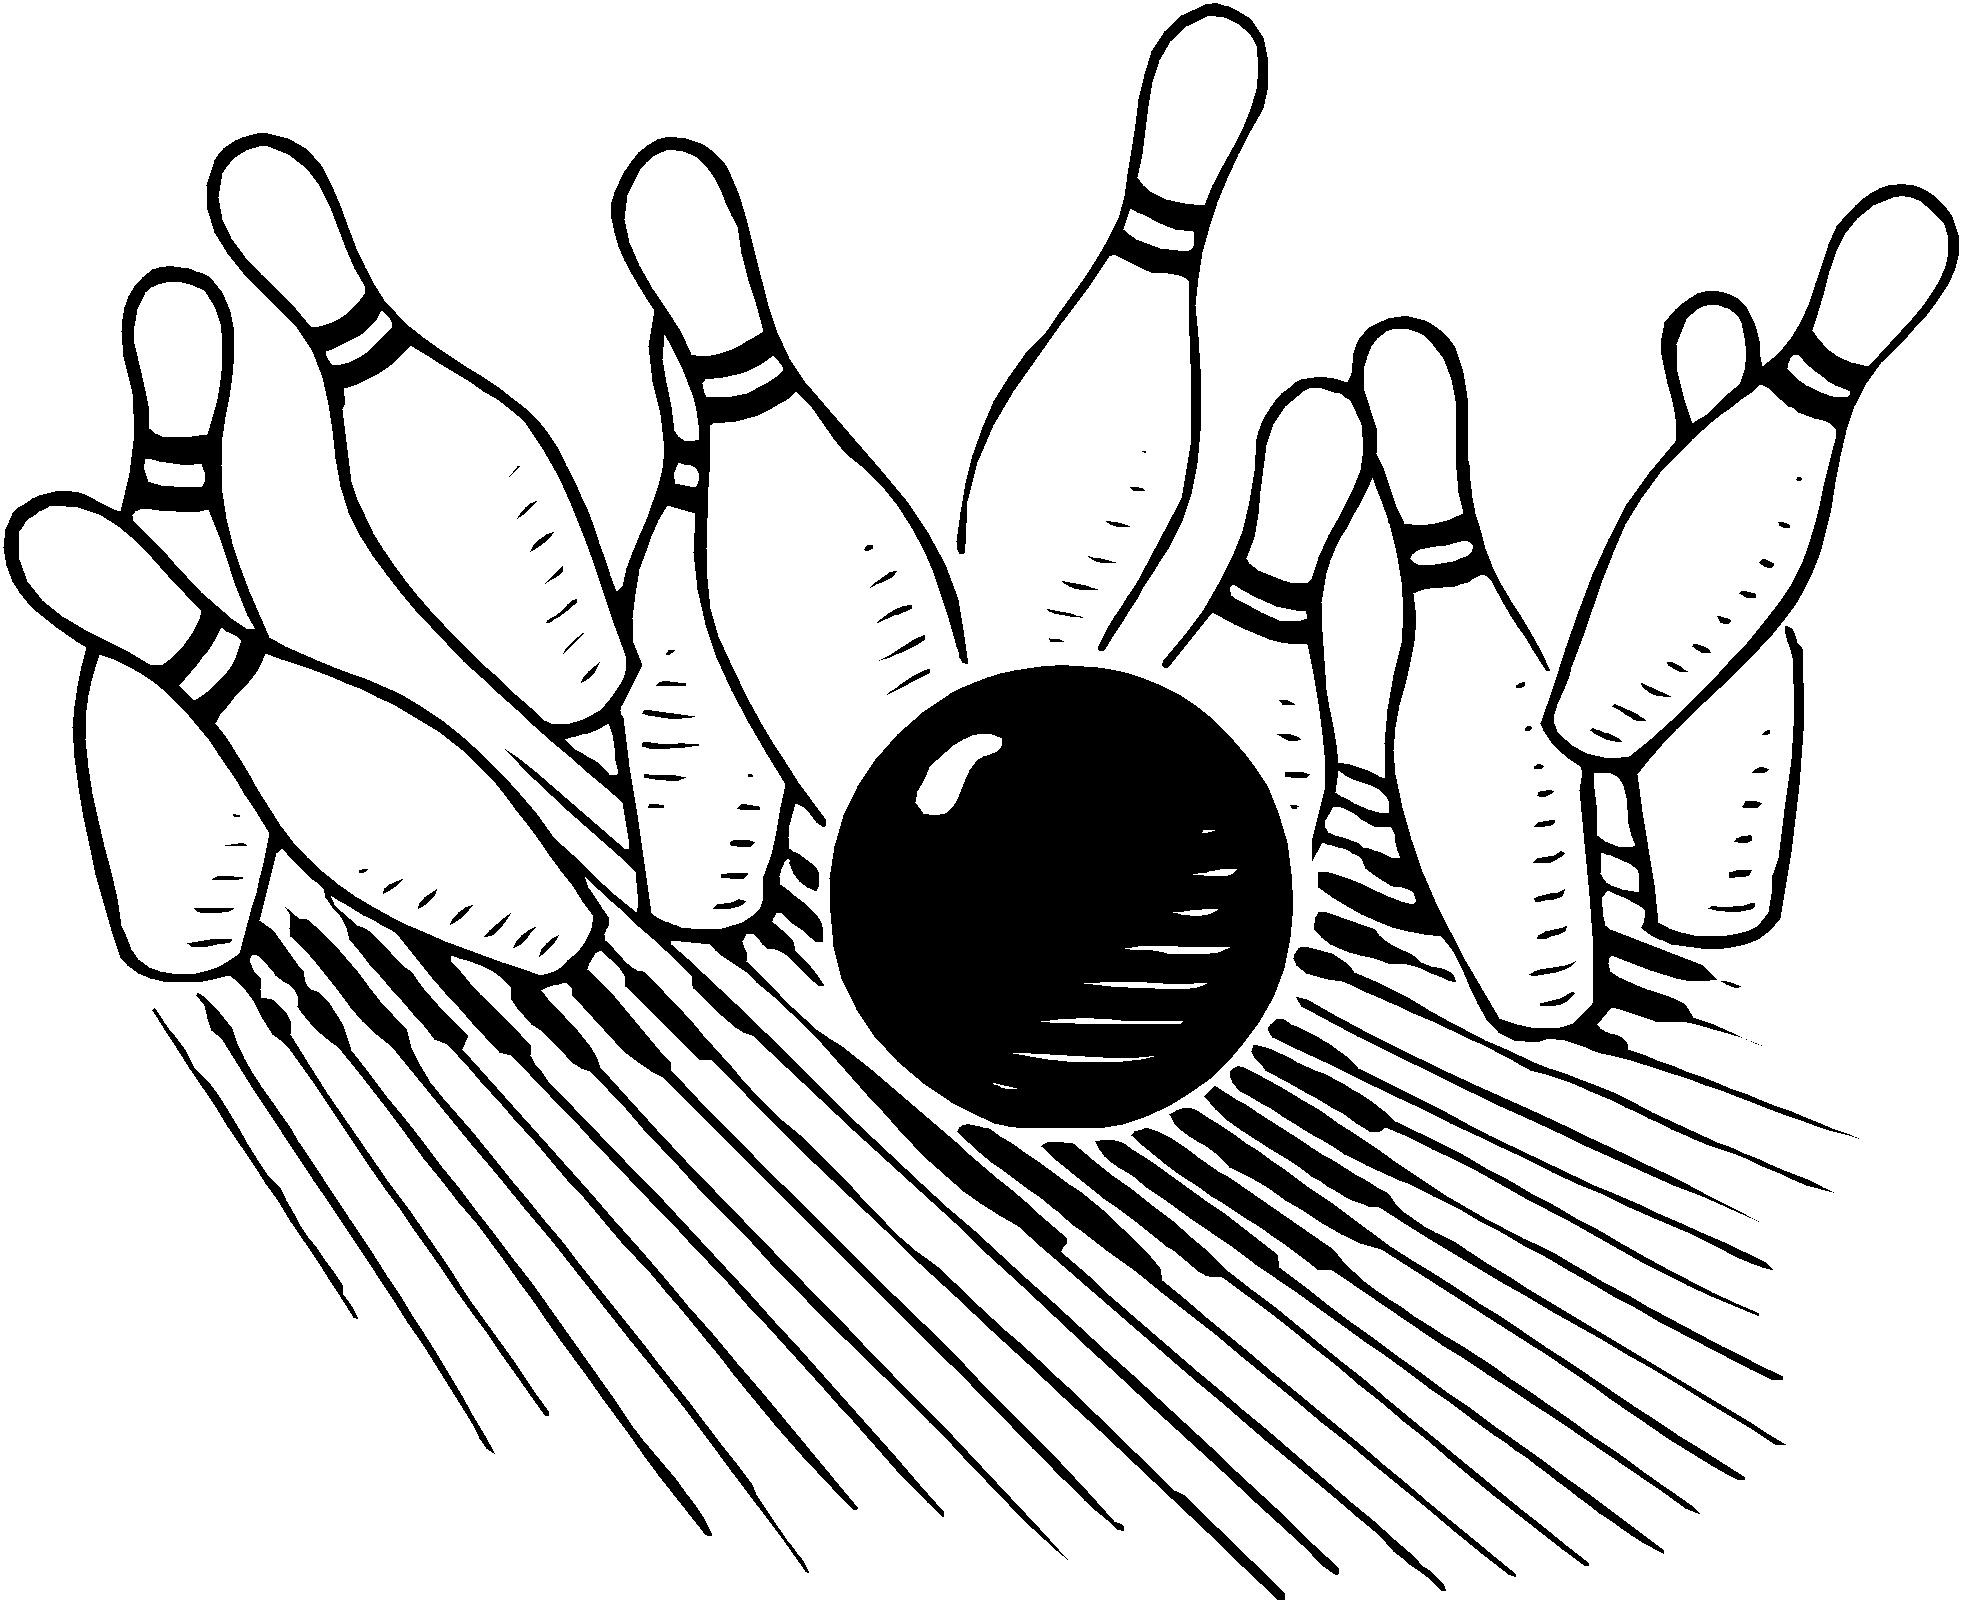 Free Bowling Cliparts, Download Free Clip Art, Free Clip Art On - Free Printable Bowling Clipart